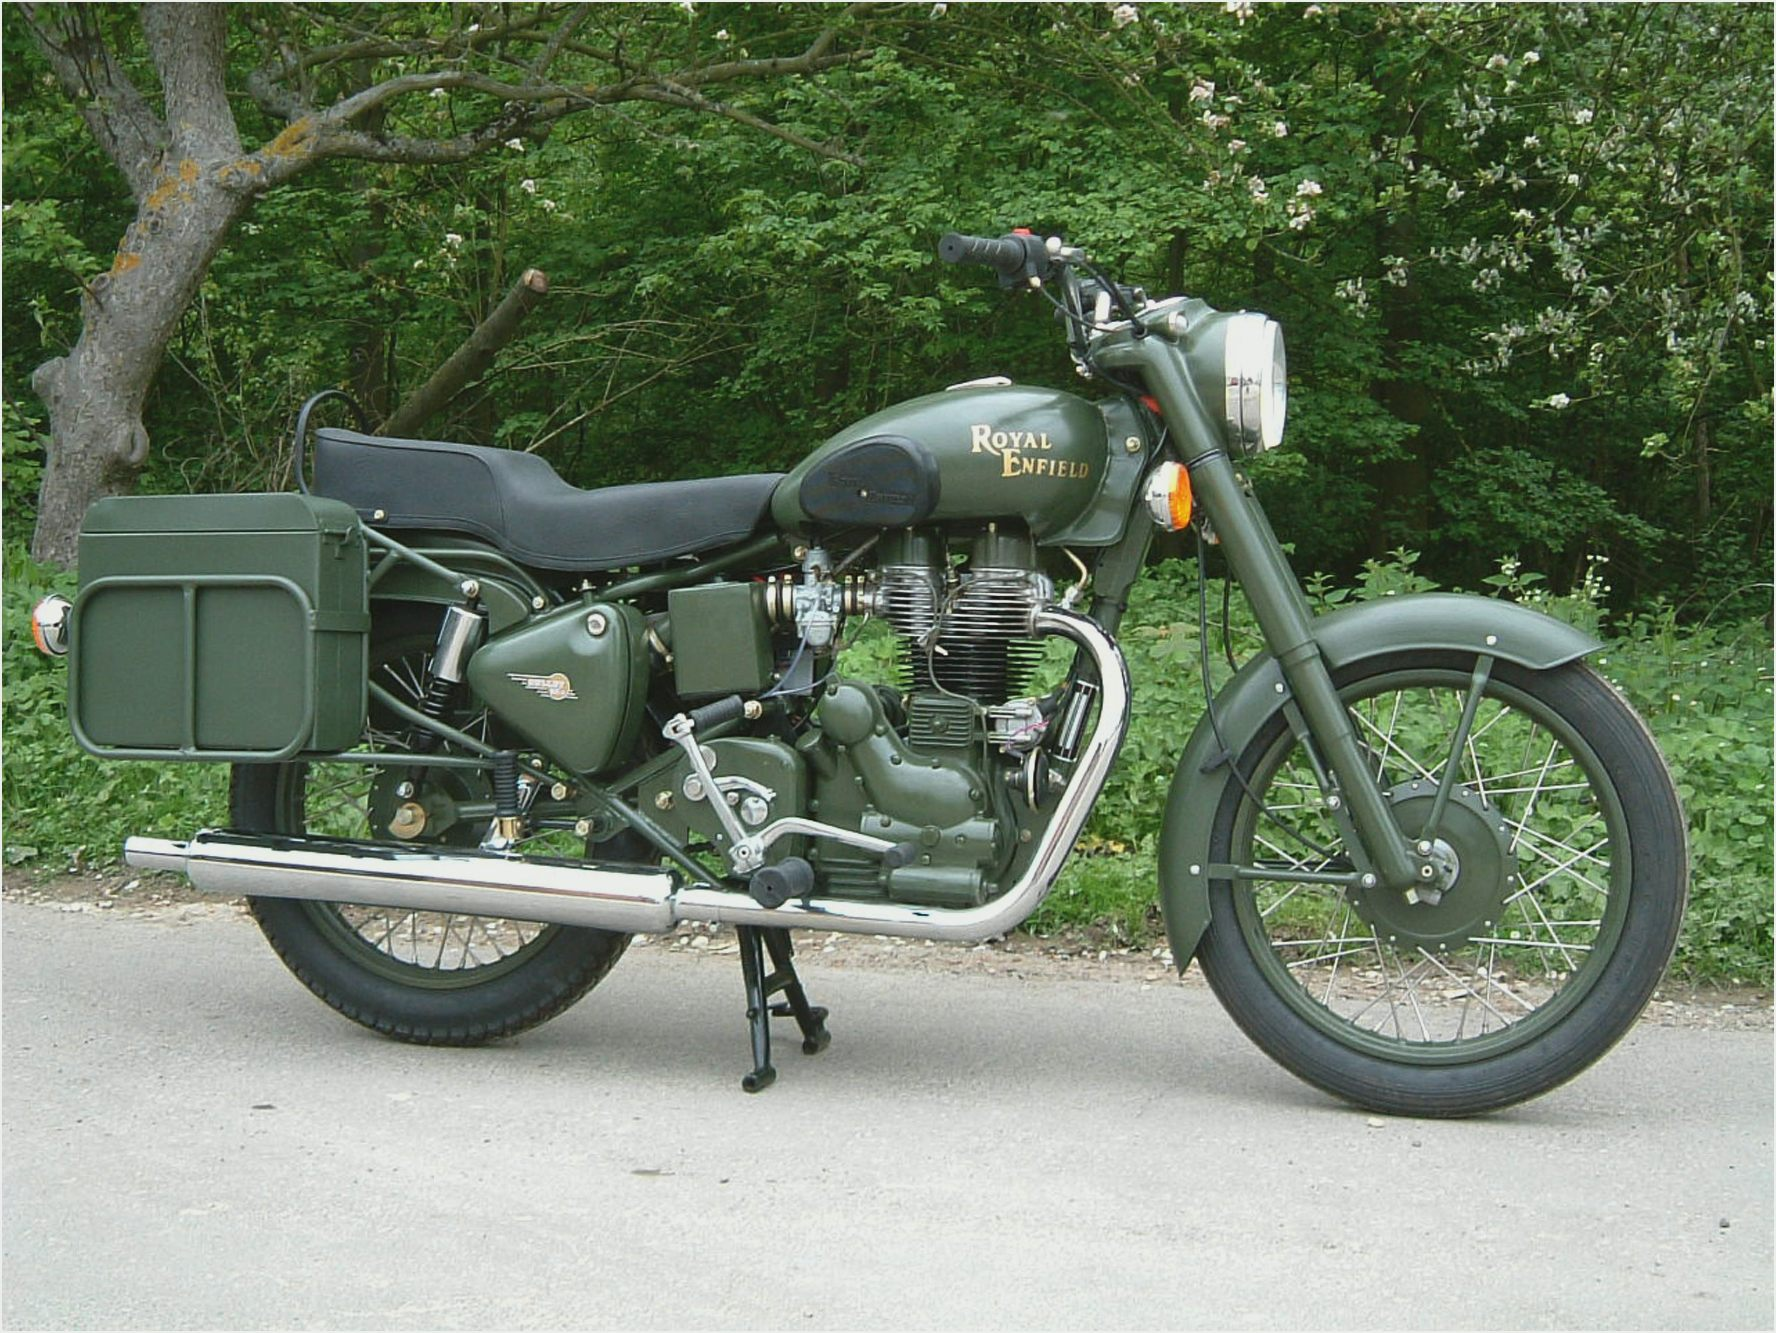 Royal Enfield Bullet 500 Army 2002 images #123423